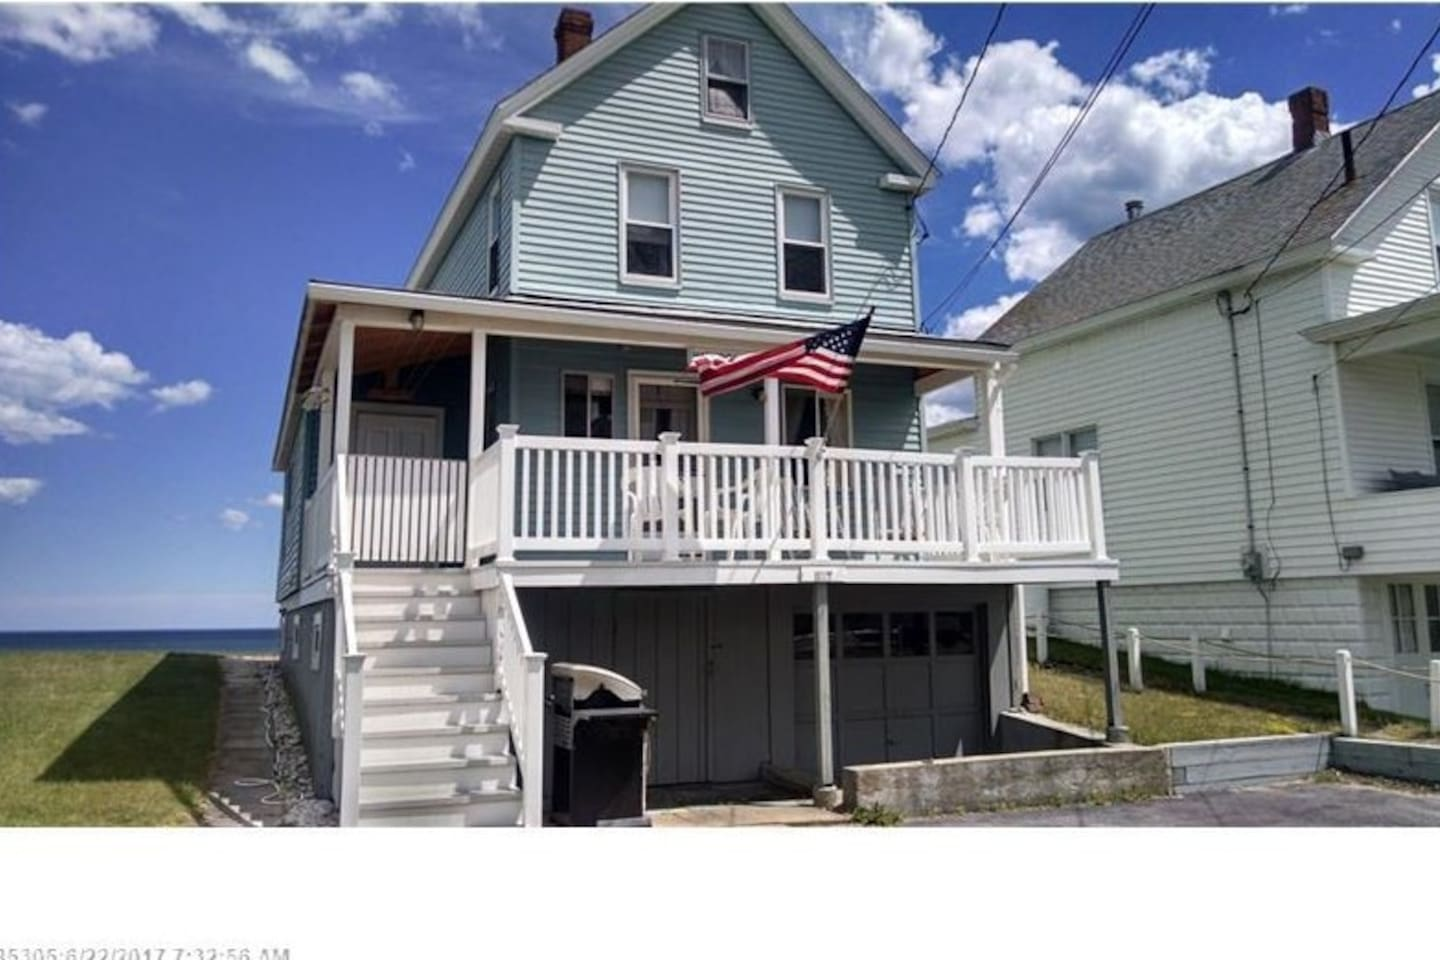 luxury hotels in resorts the bed yards deal image ecfc beach rentals from area home property conservation and ha maine watercrest cottages wells s